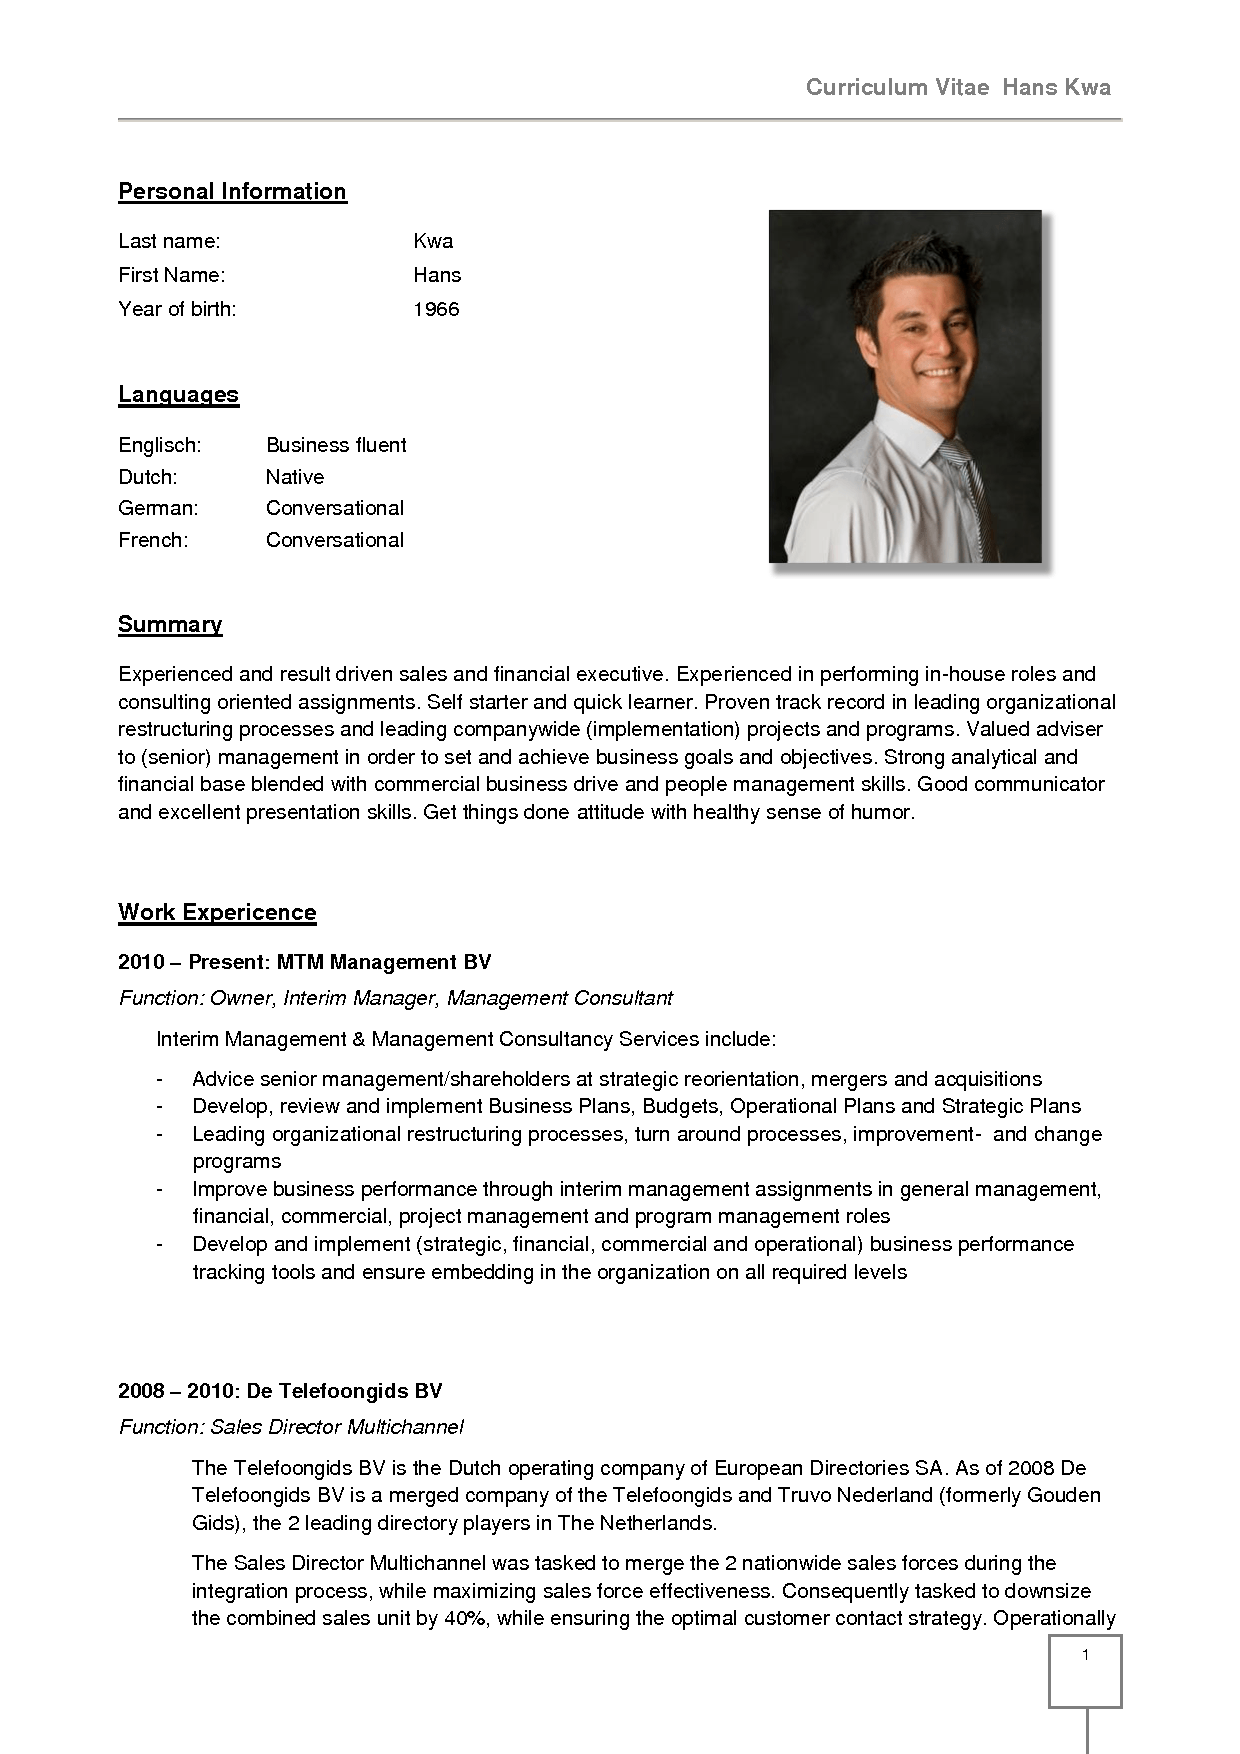 Cv Template Germany | Microsoft resume templates, Resume ...